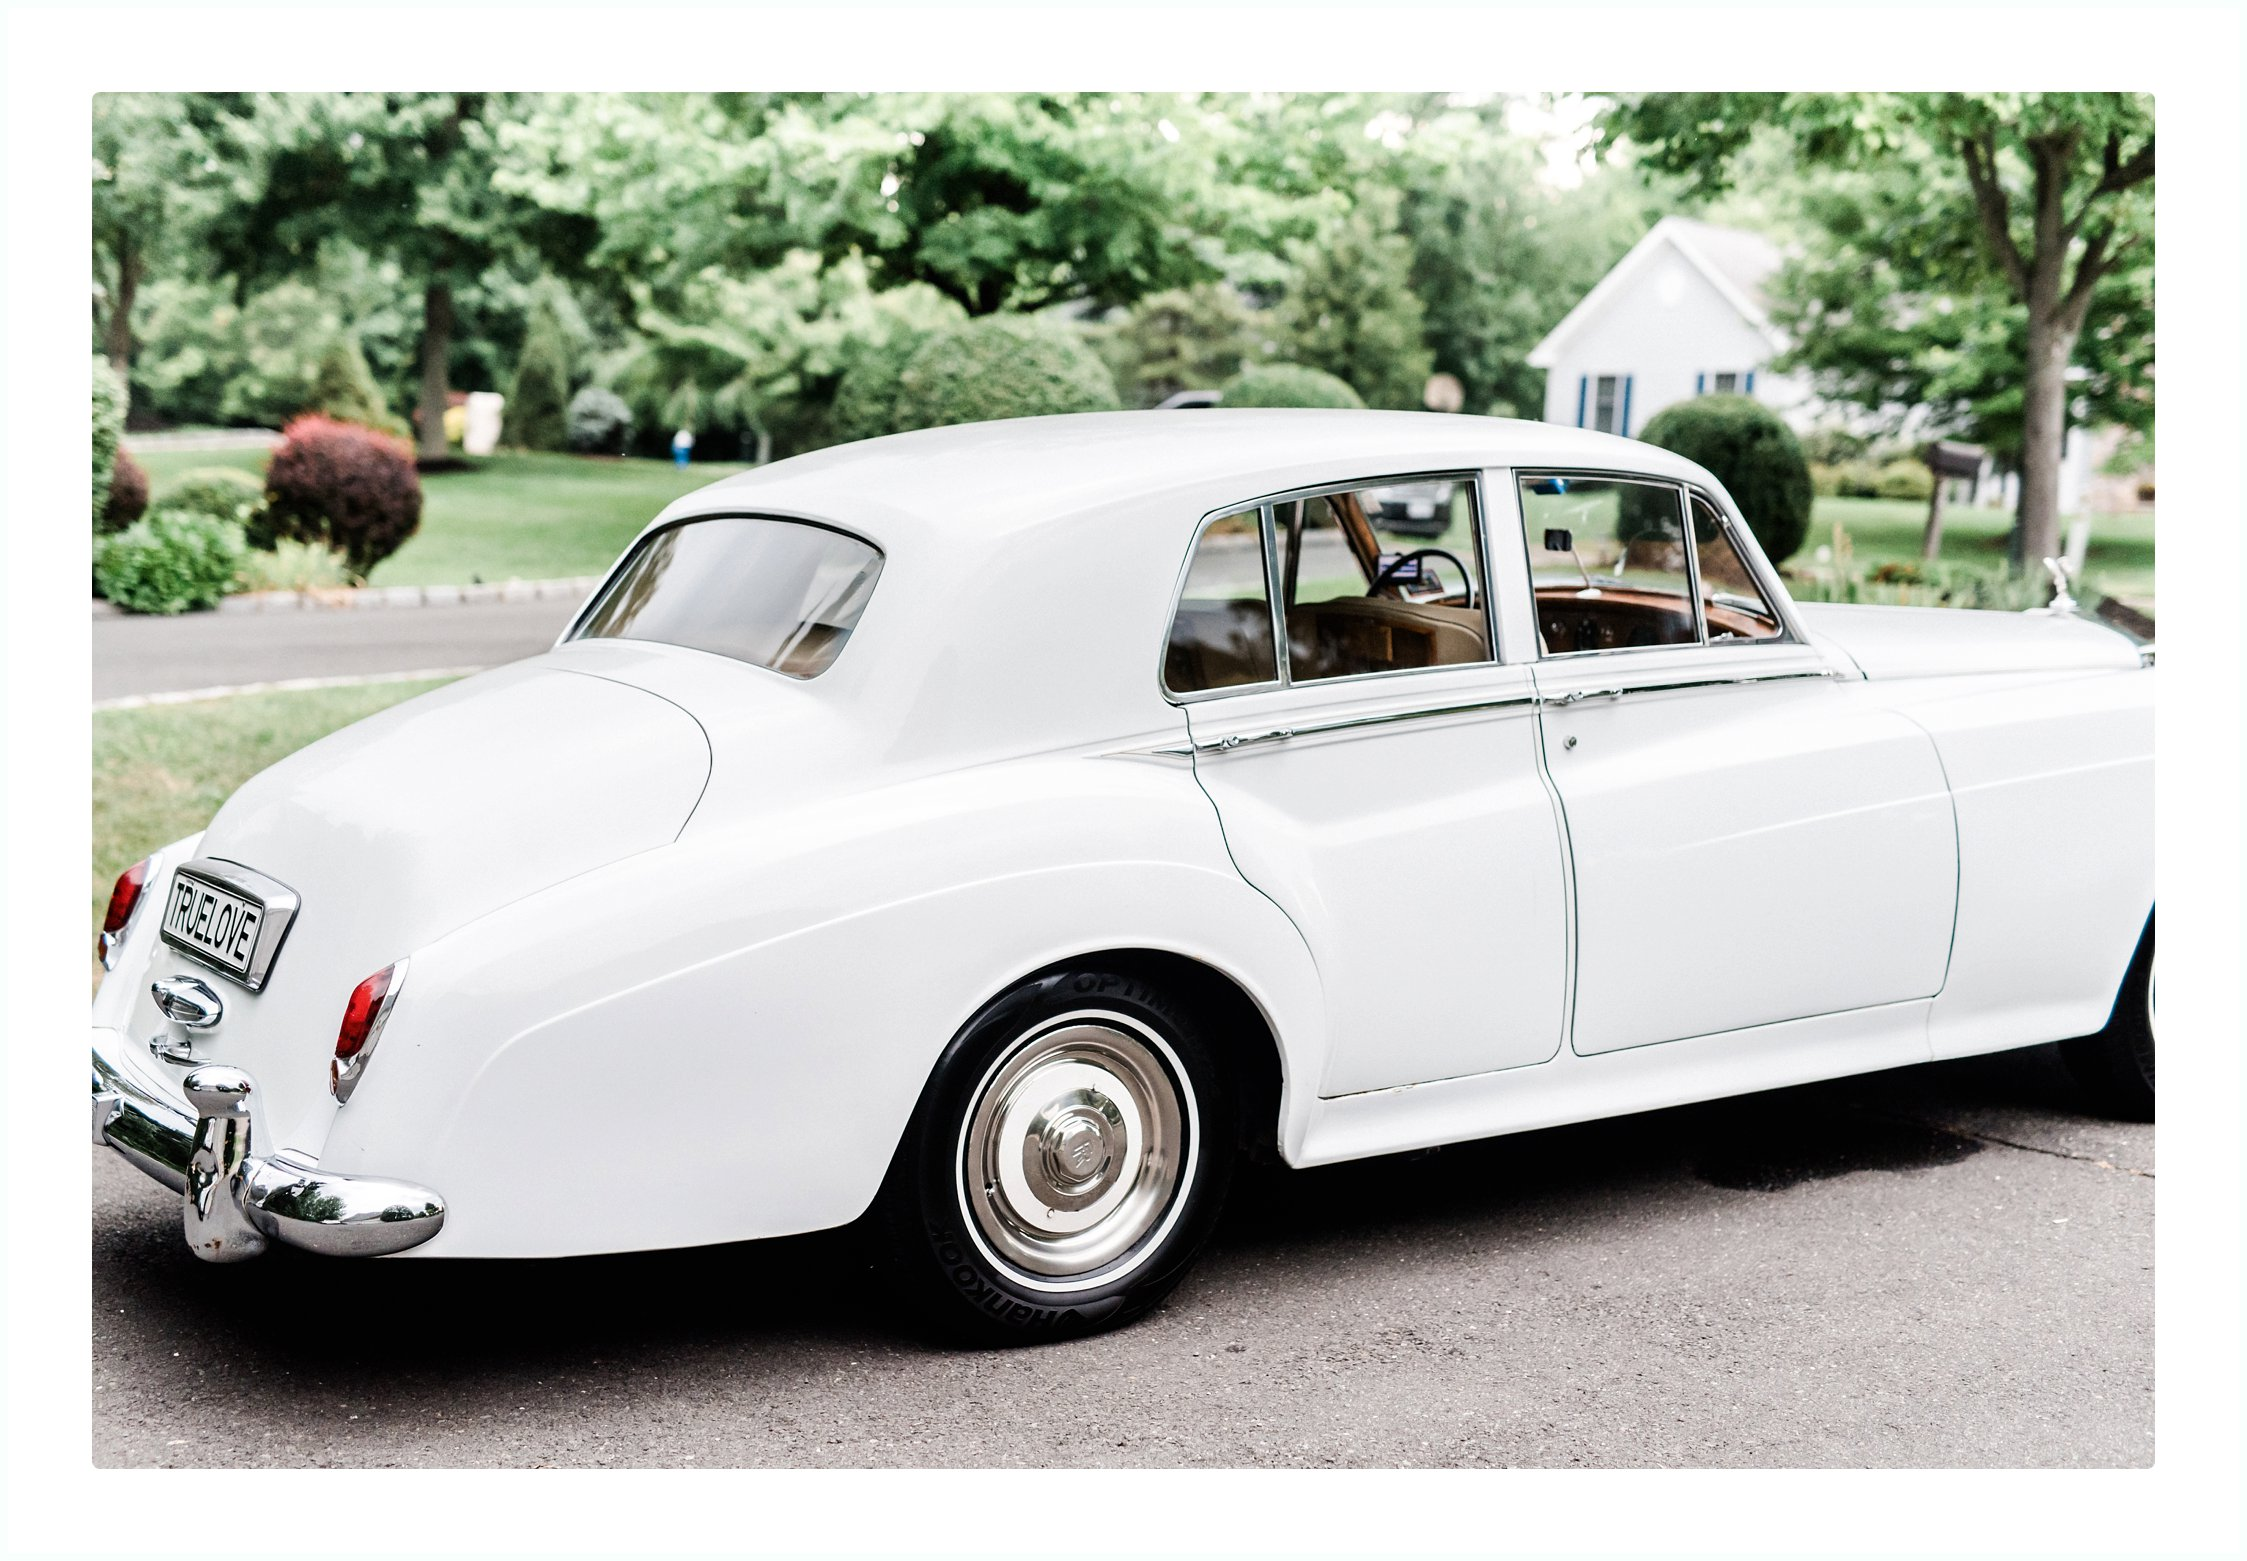 white rolls royce car for a wedding day at park savoy in florham park new jersey